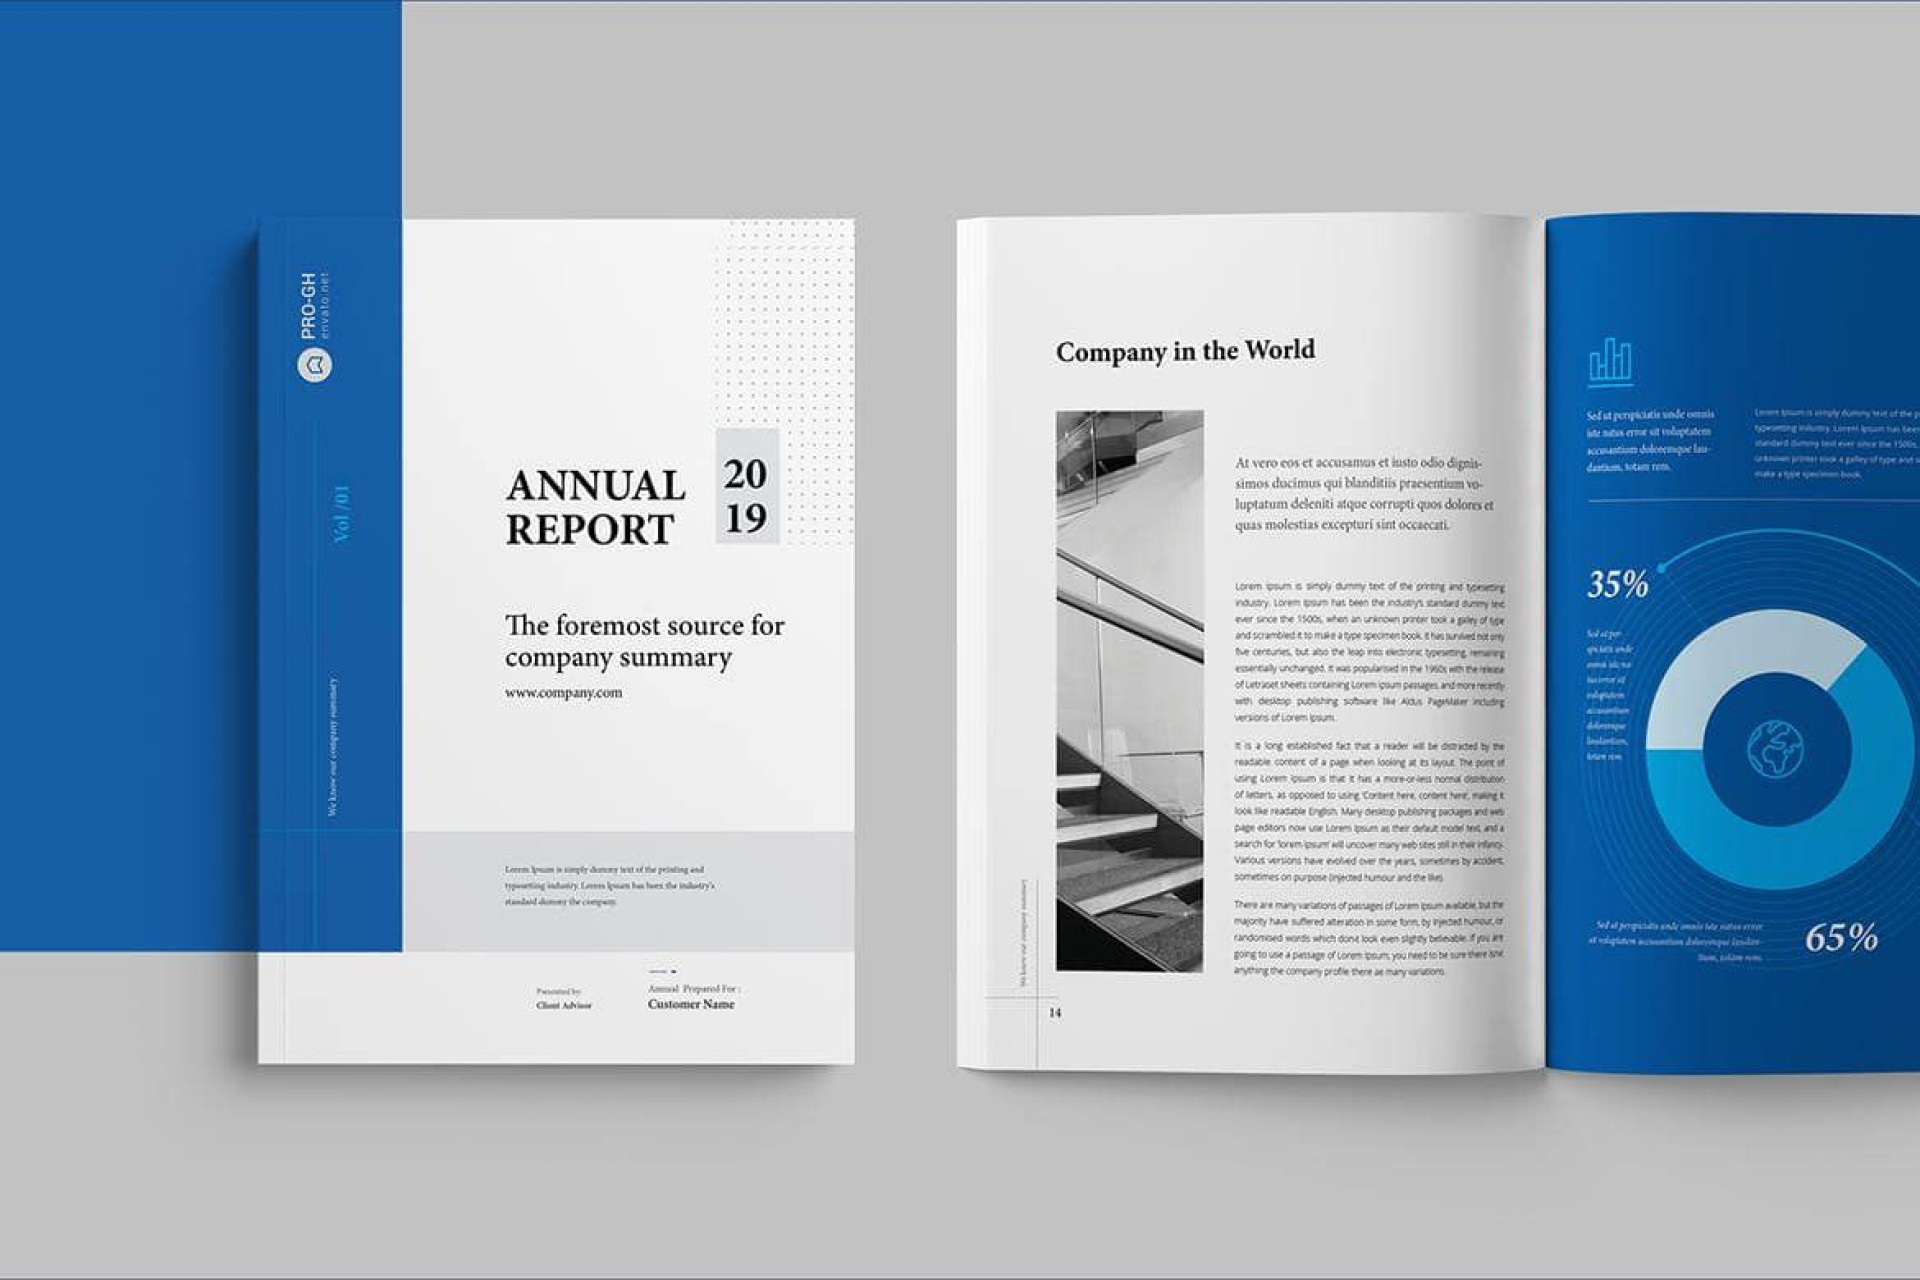 008 Unbelievable Free Indesign Annual Report Template Download Sample 1920